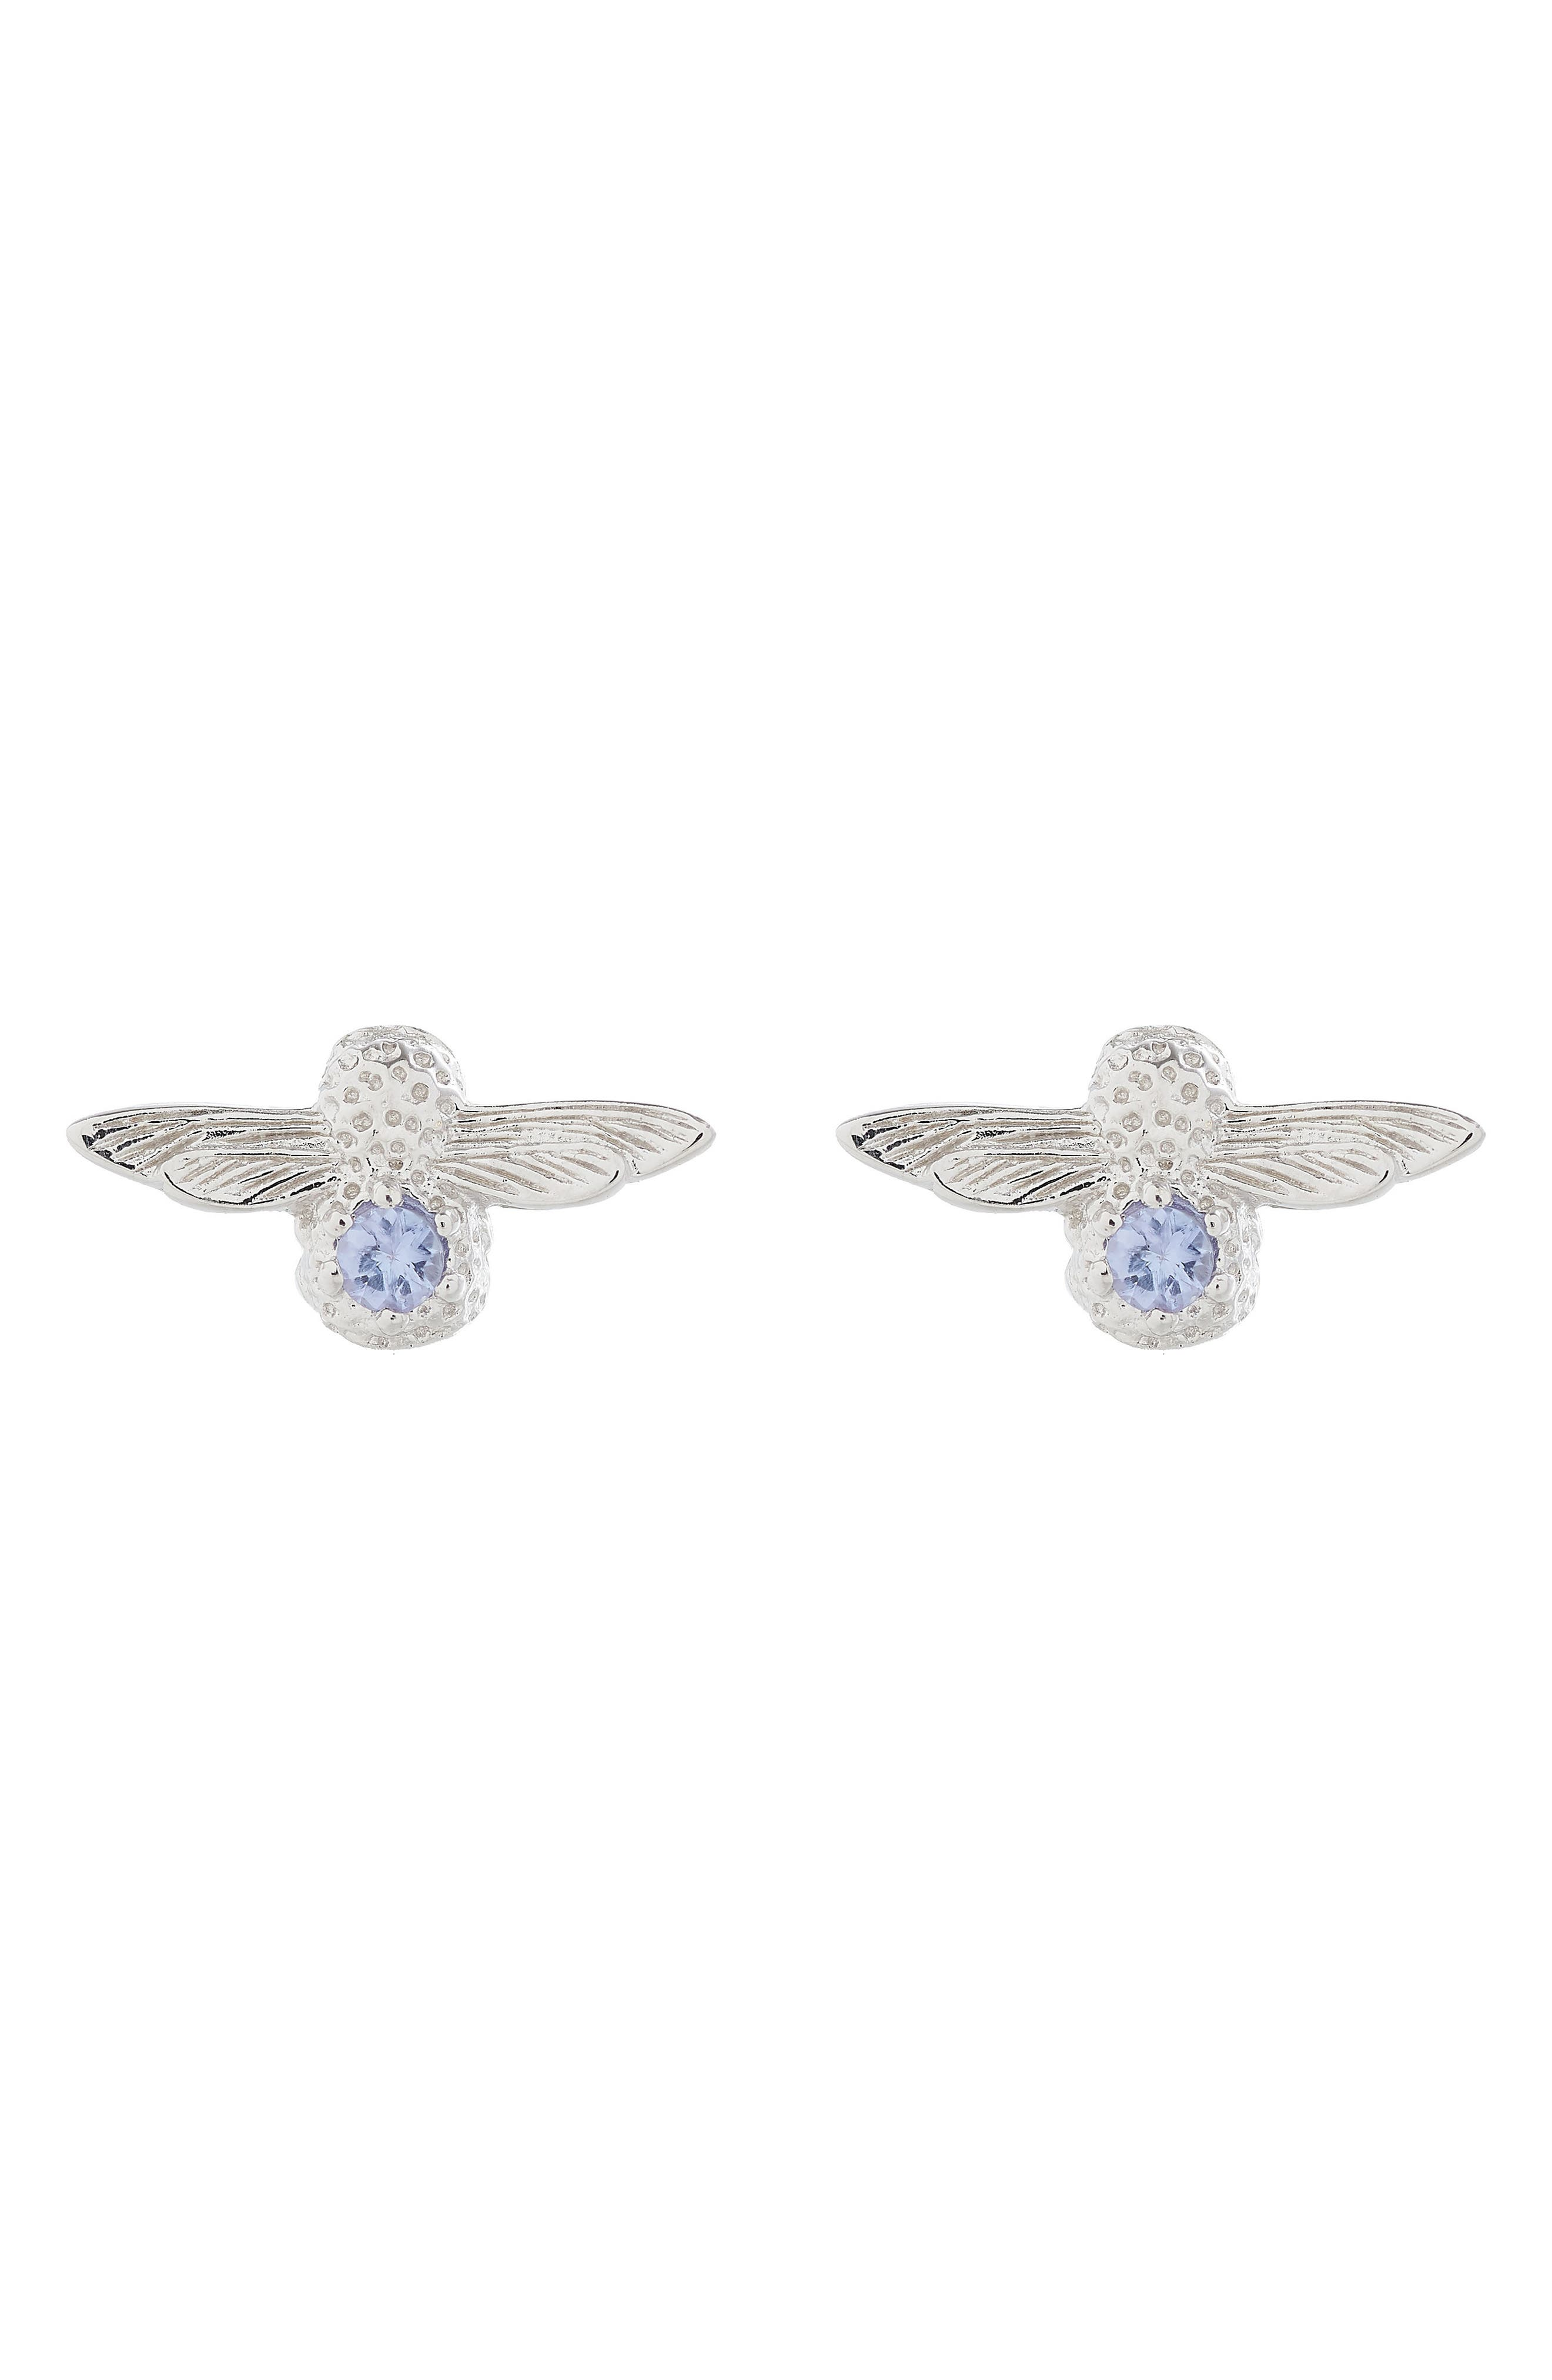 3D Bejeweled Bee Stud Earrings,                         Main,                         color, TWO TONE-SILVER / TANZANITE